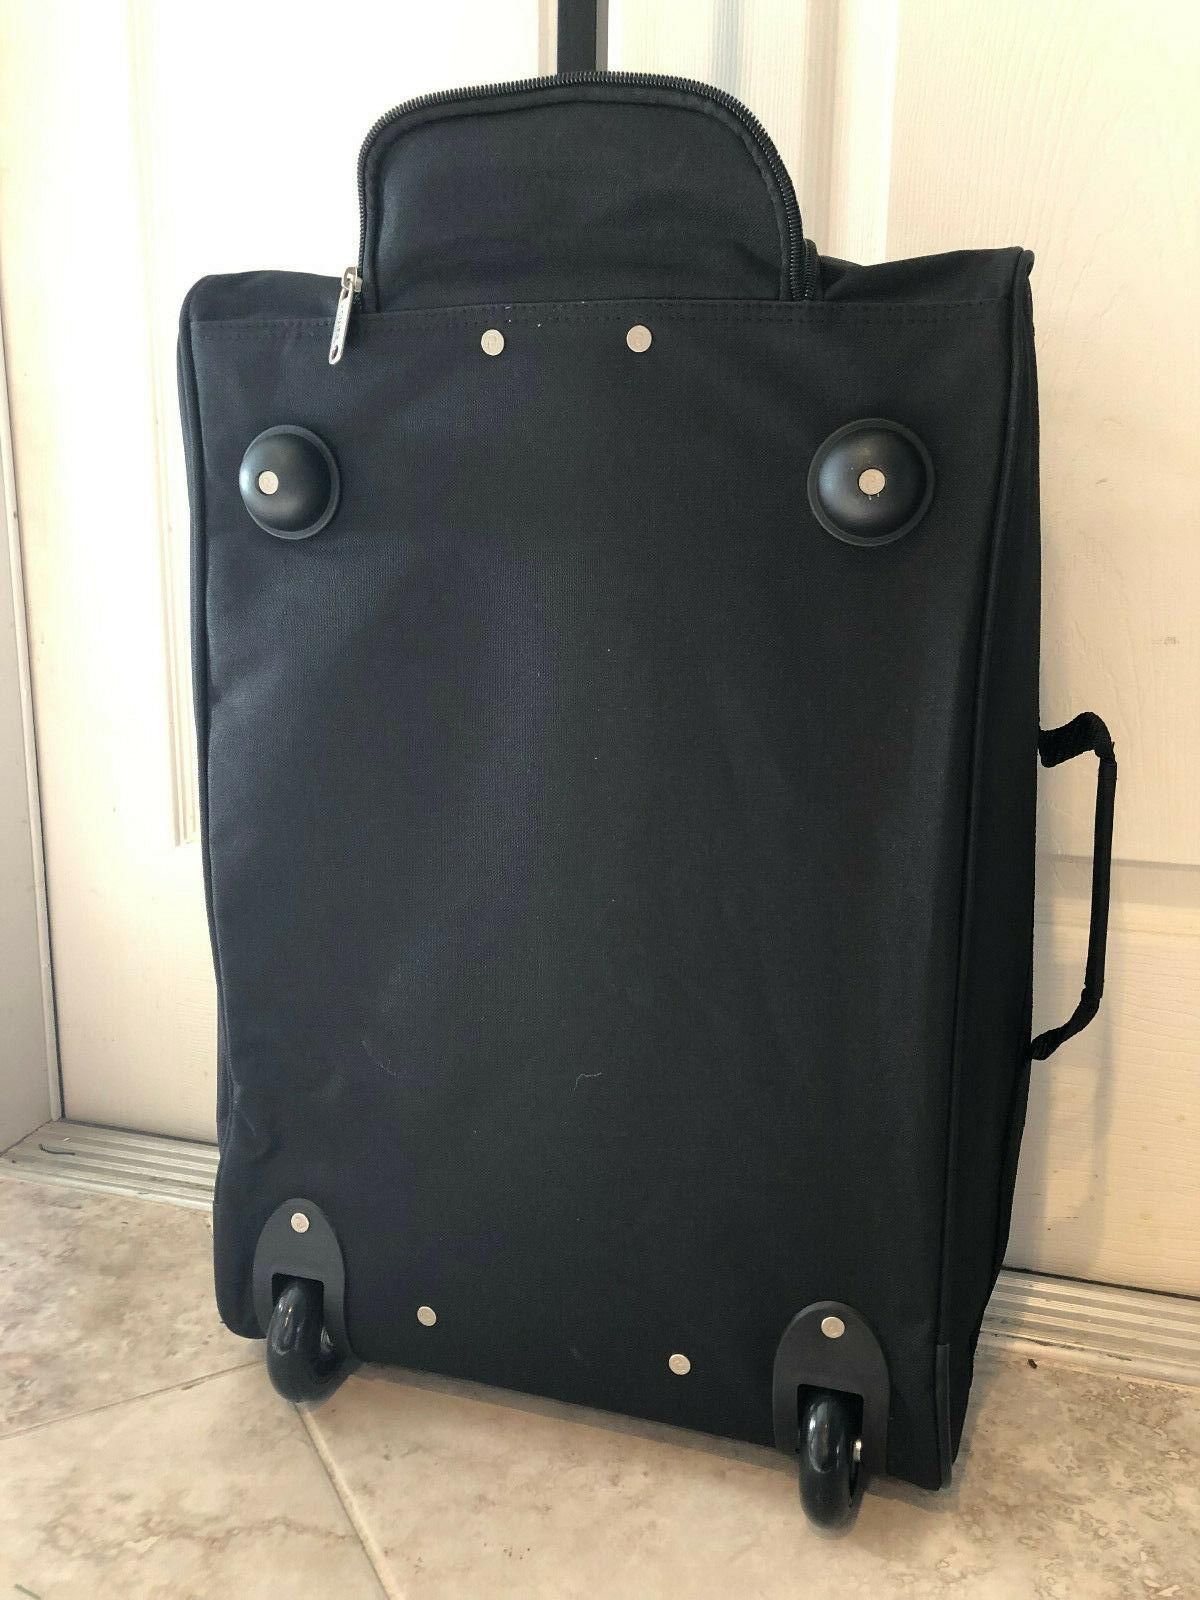 "5 Cities 21"" 55cm Black Carry On Luggage Cabin Approved Bag NWT"